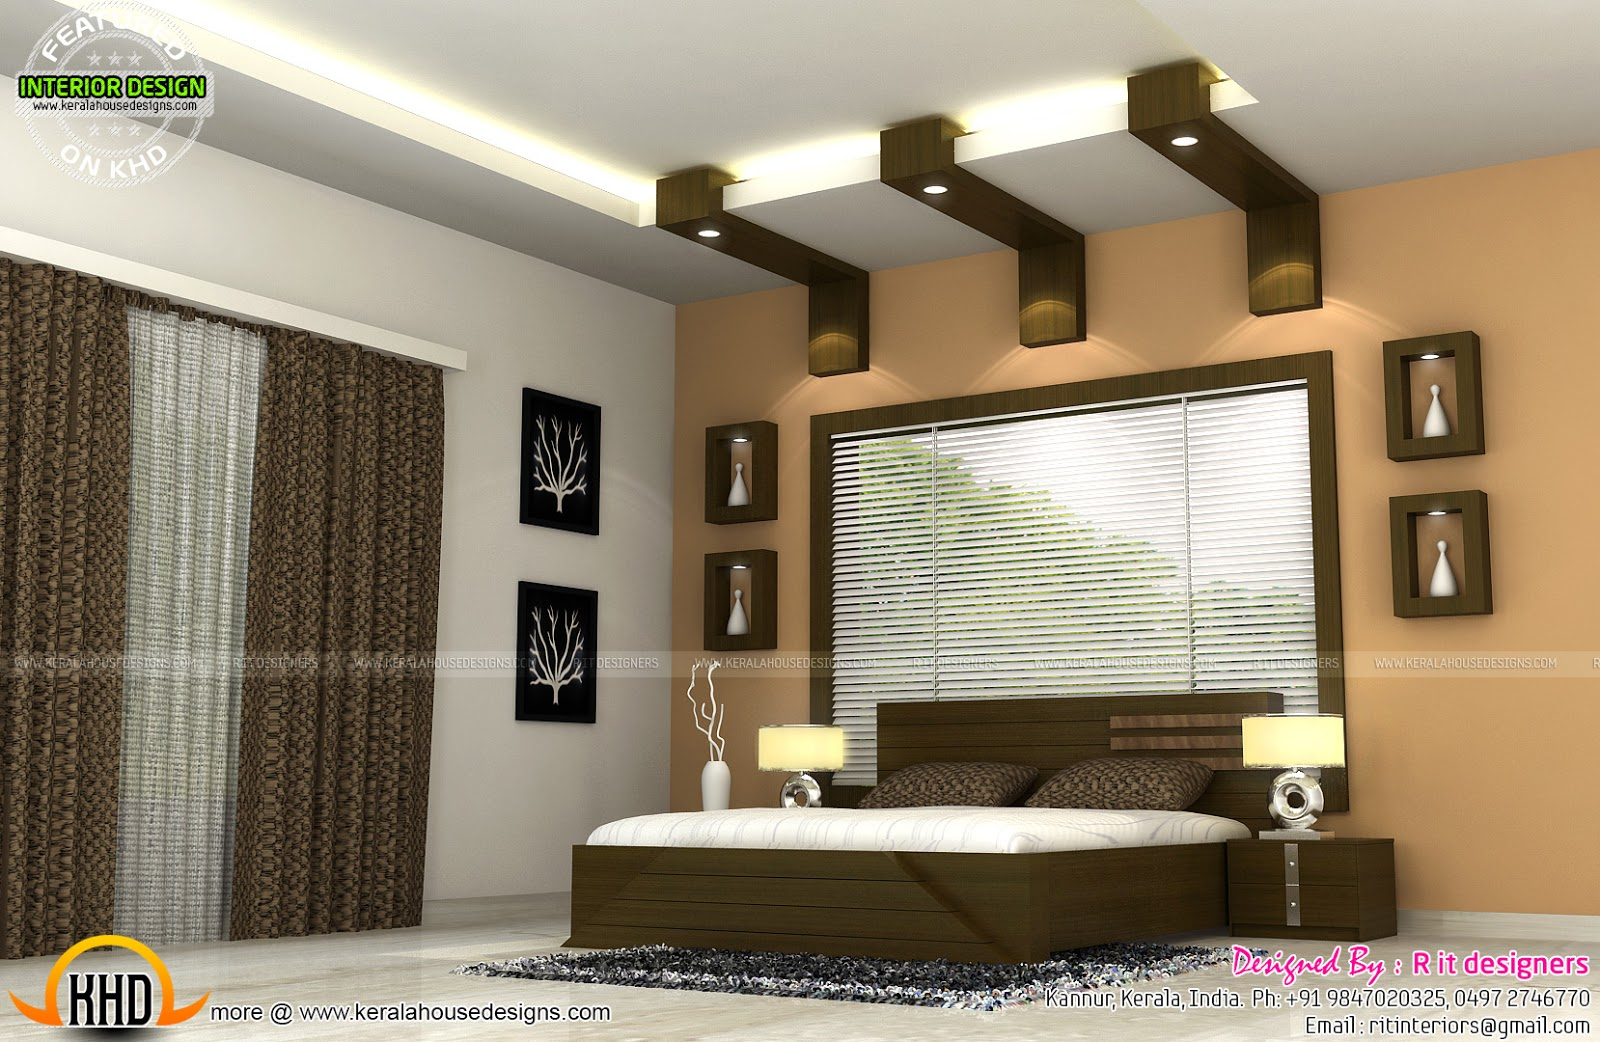 Interiors of bedrooms and kitchen kerala home design and for Indoor design in home